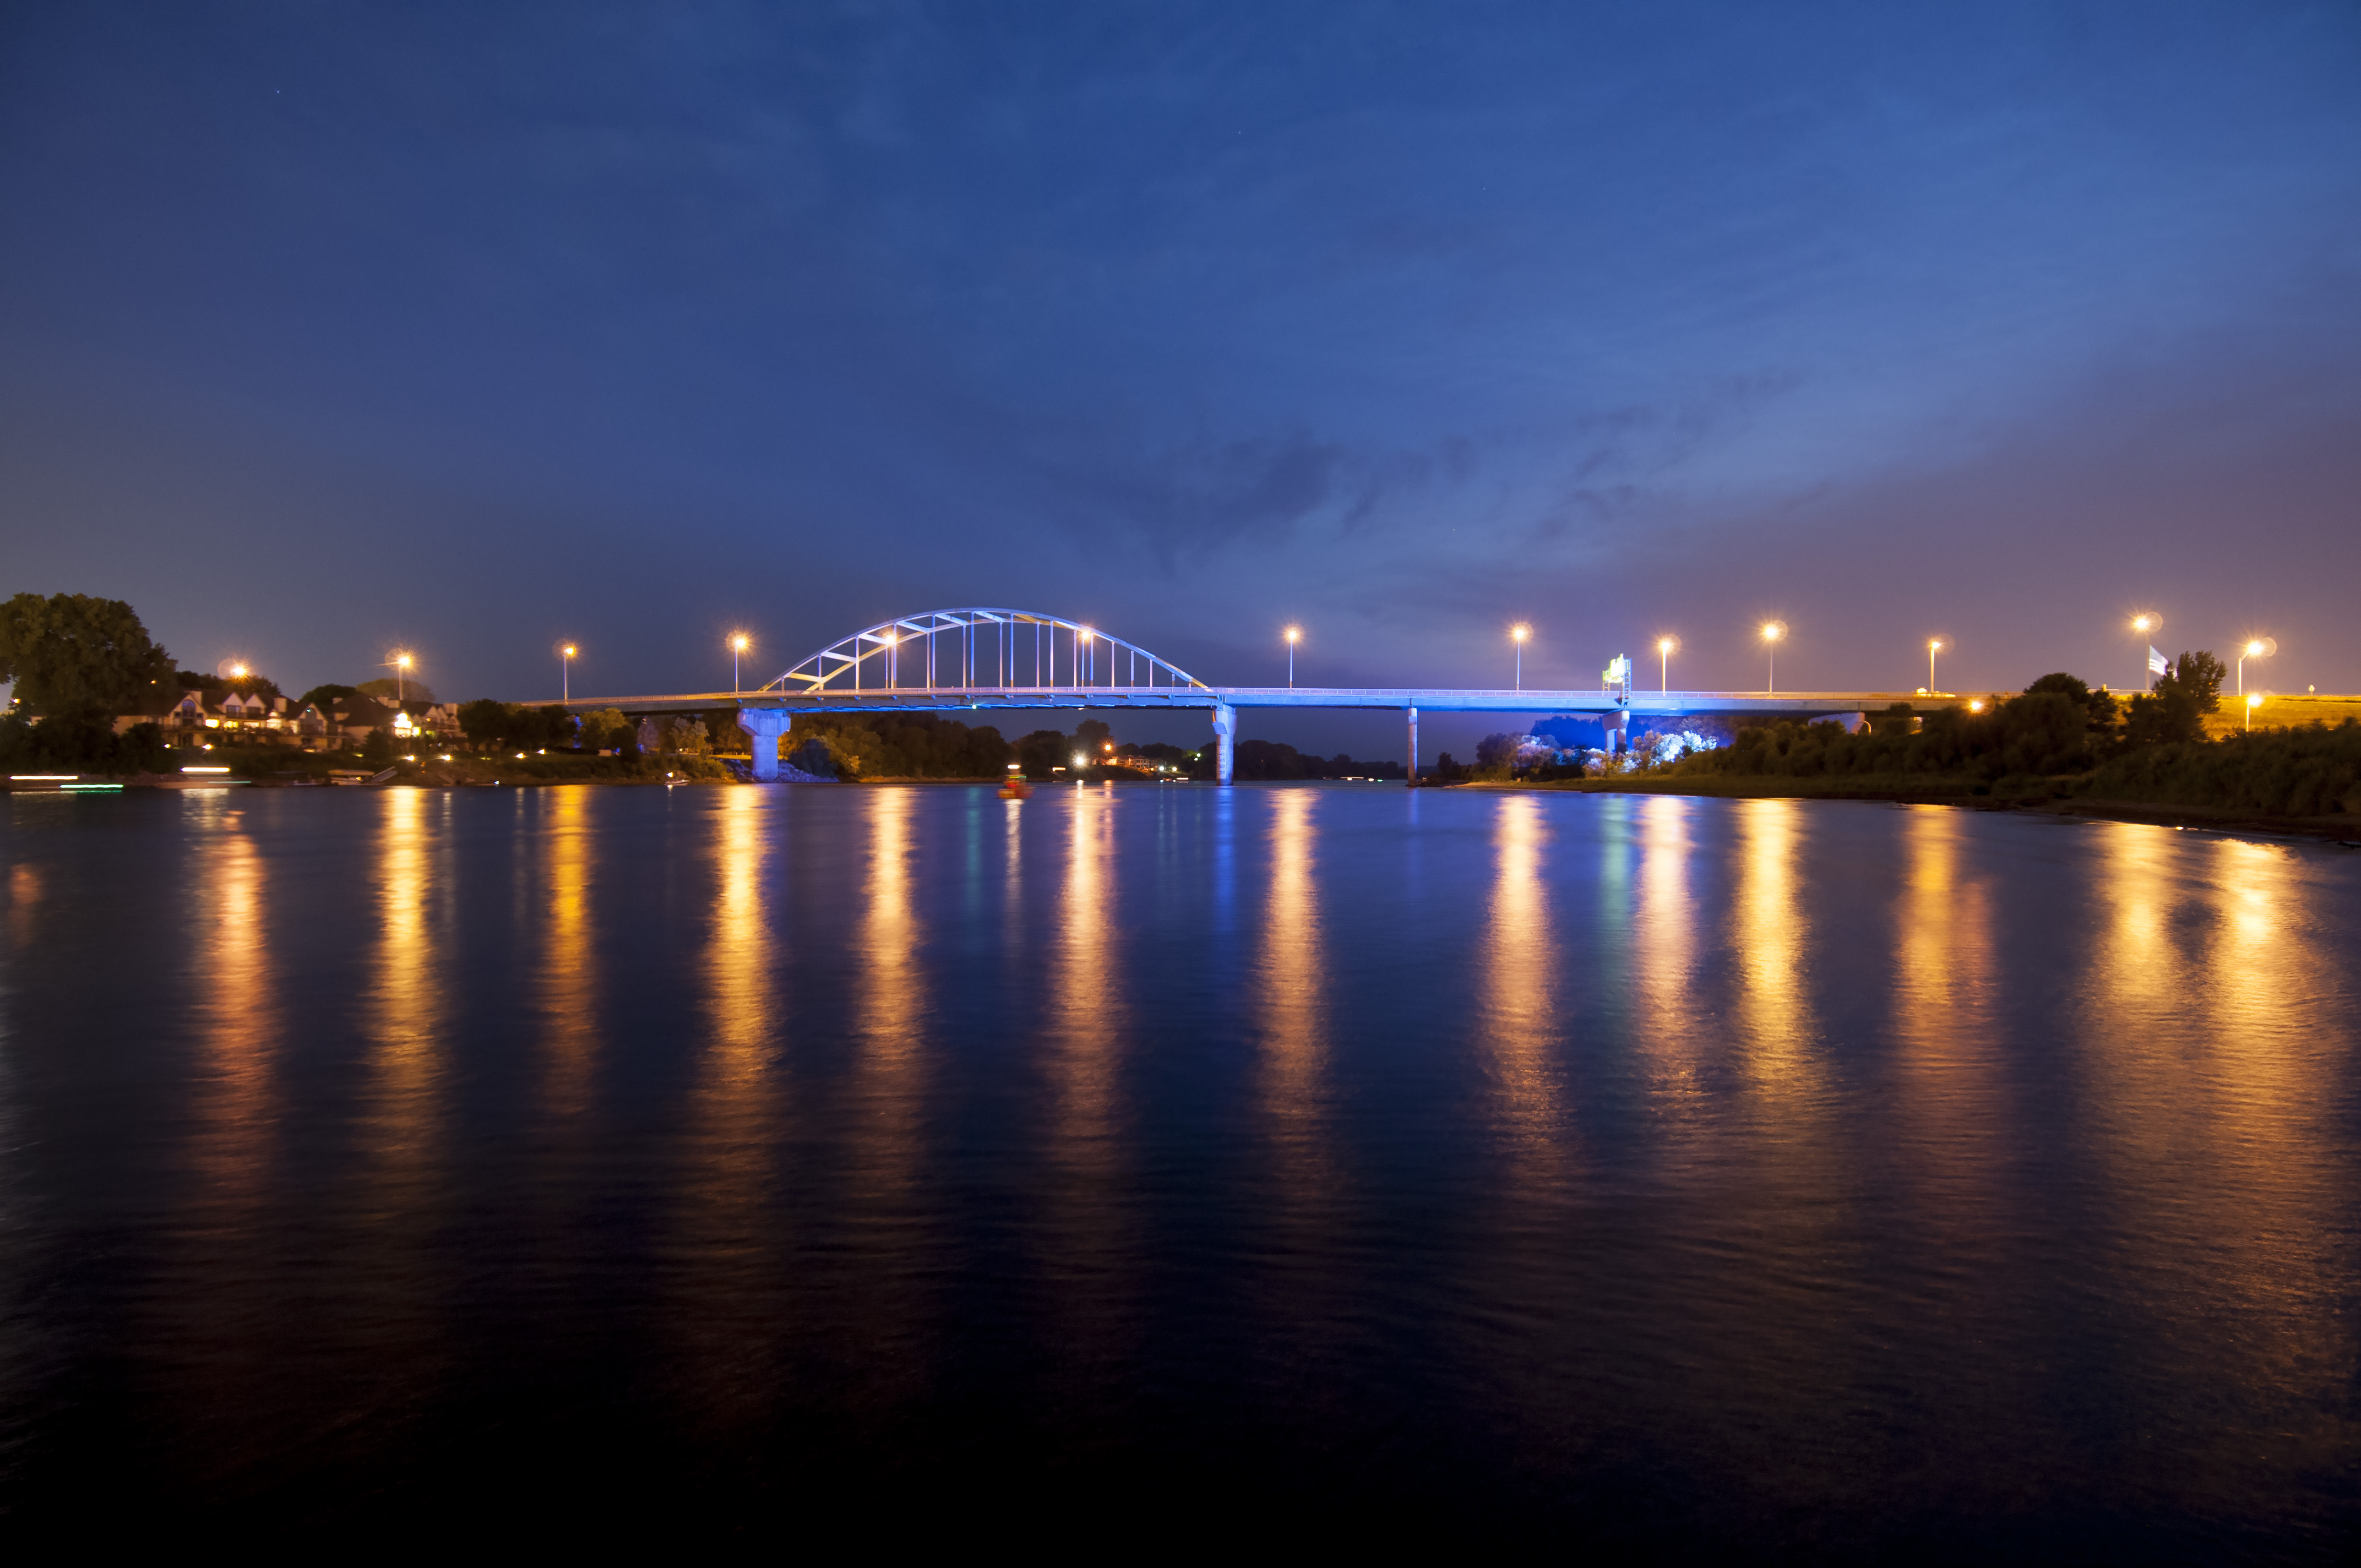 Sioux City Memorial Bridge